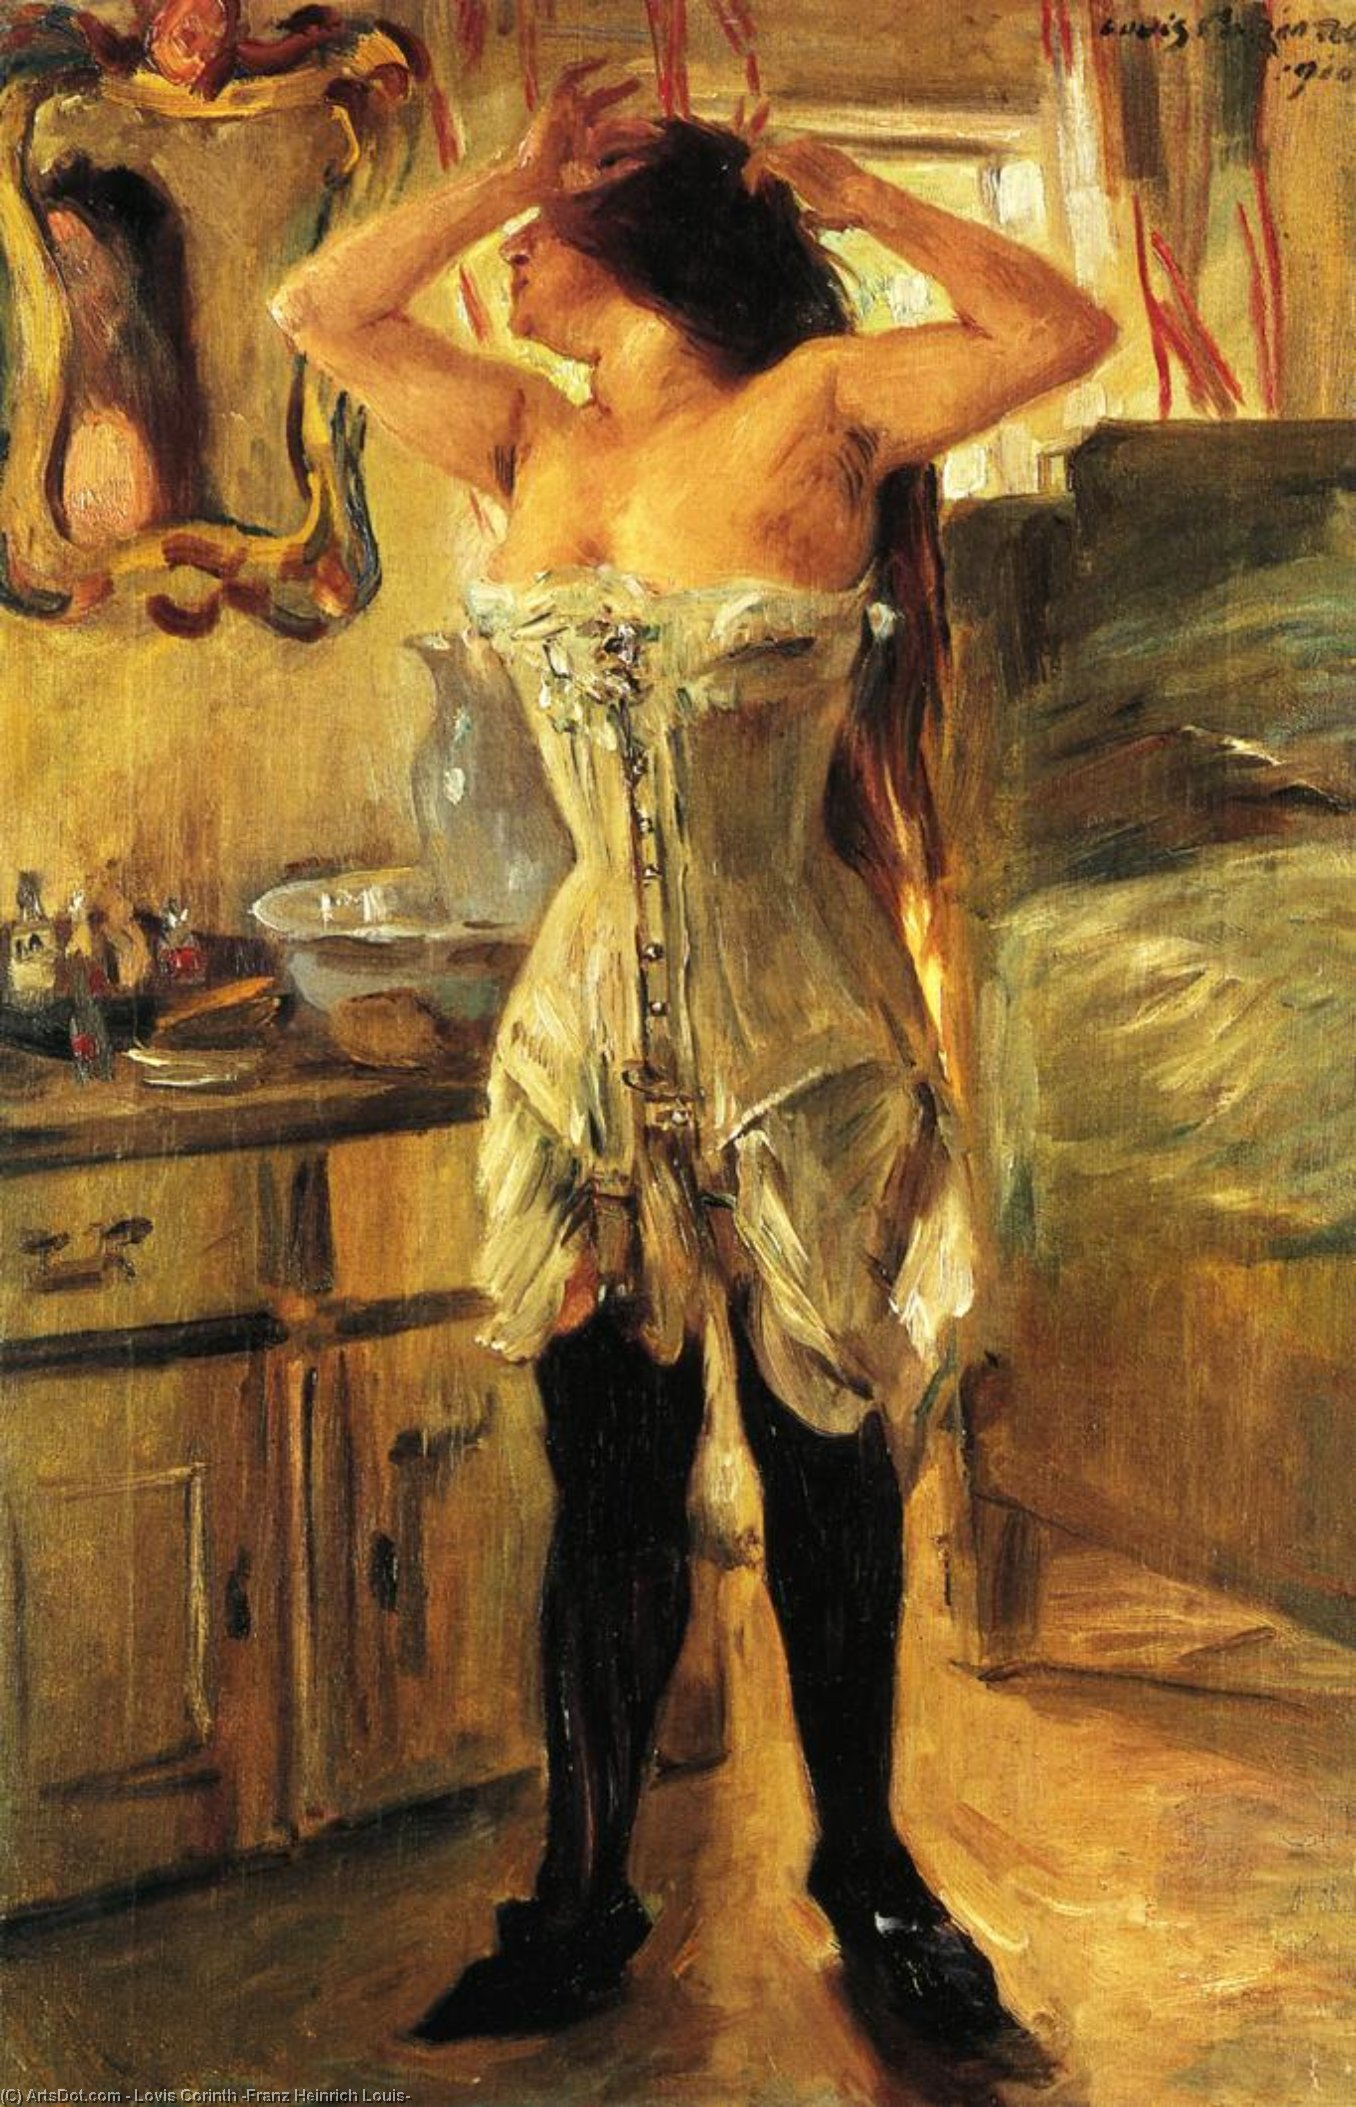 Wikioo.org - The Encyclopedia of Fine Arts - Painting, Artwork by Lovis Corinth (Franz Heinrich Louis) - In a Corset